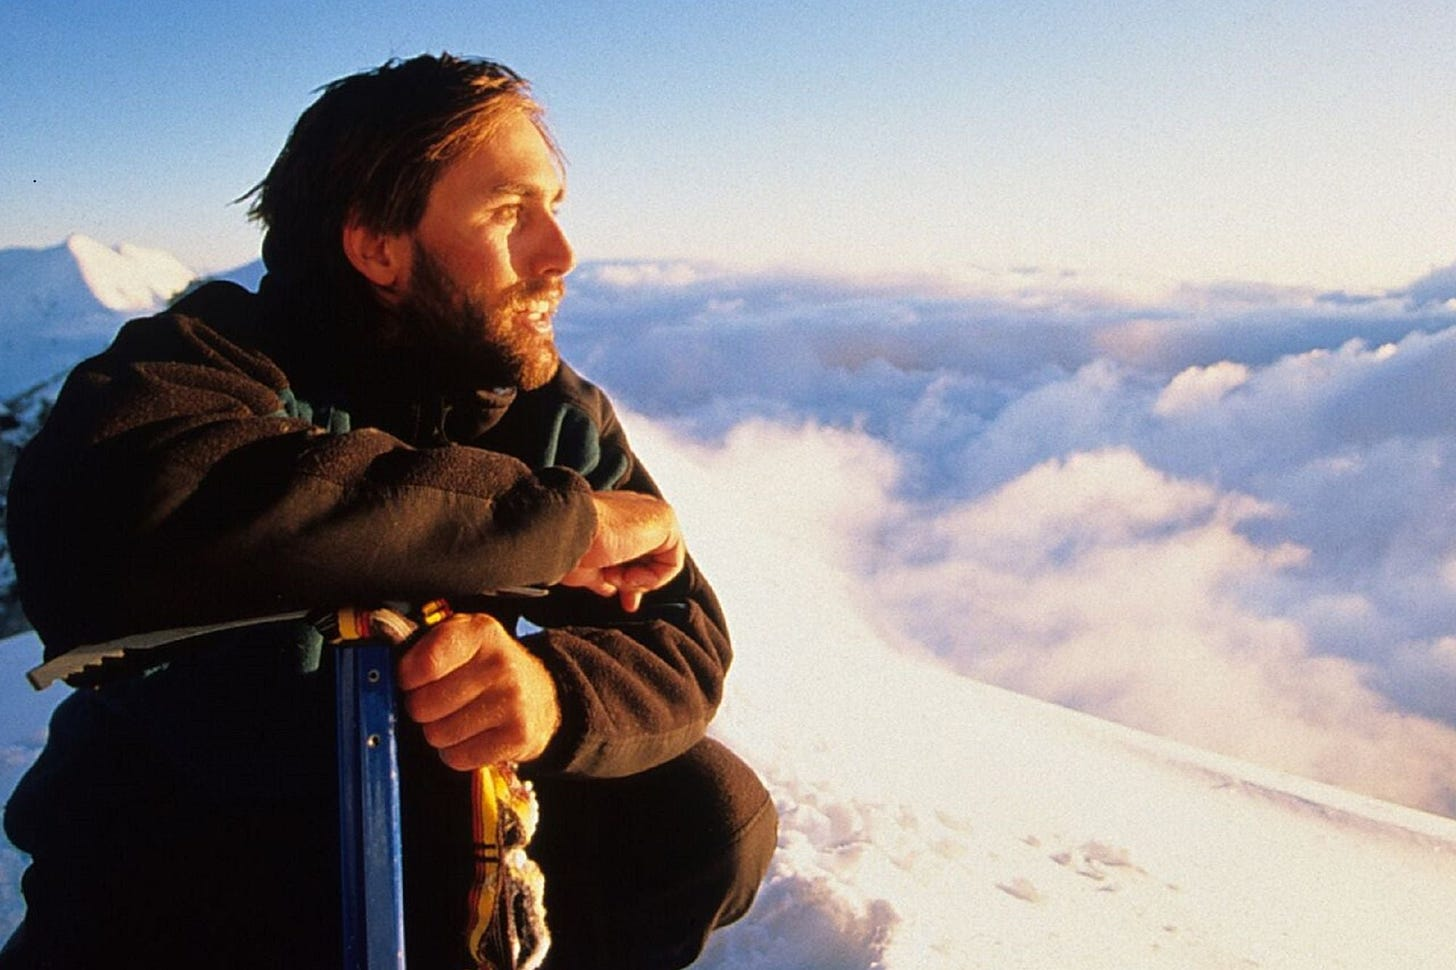 """Overcoming Adversity: Erik Weihenmayer On """"Quitters, Campers, And Climbers"""""""